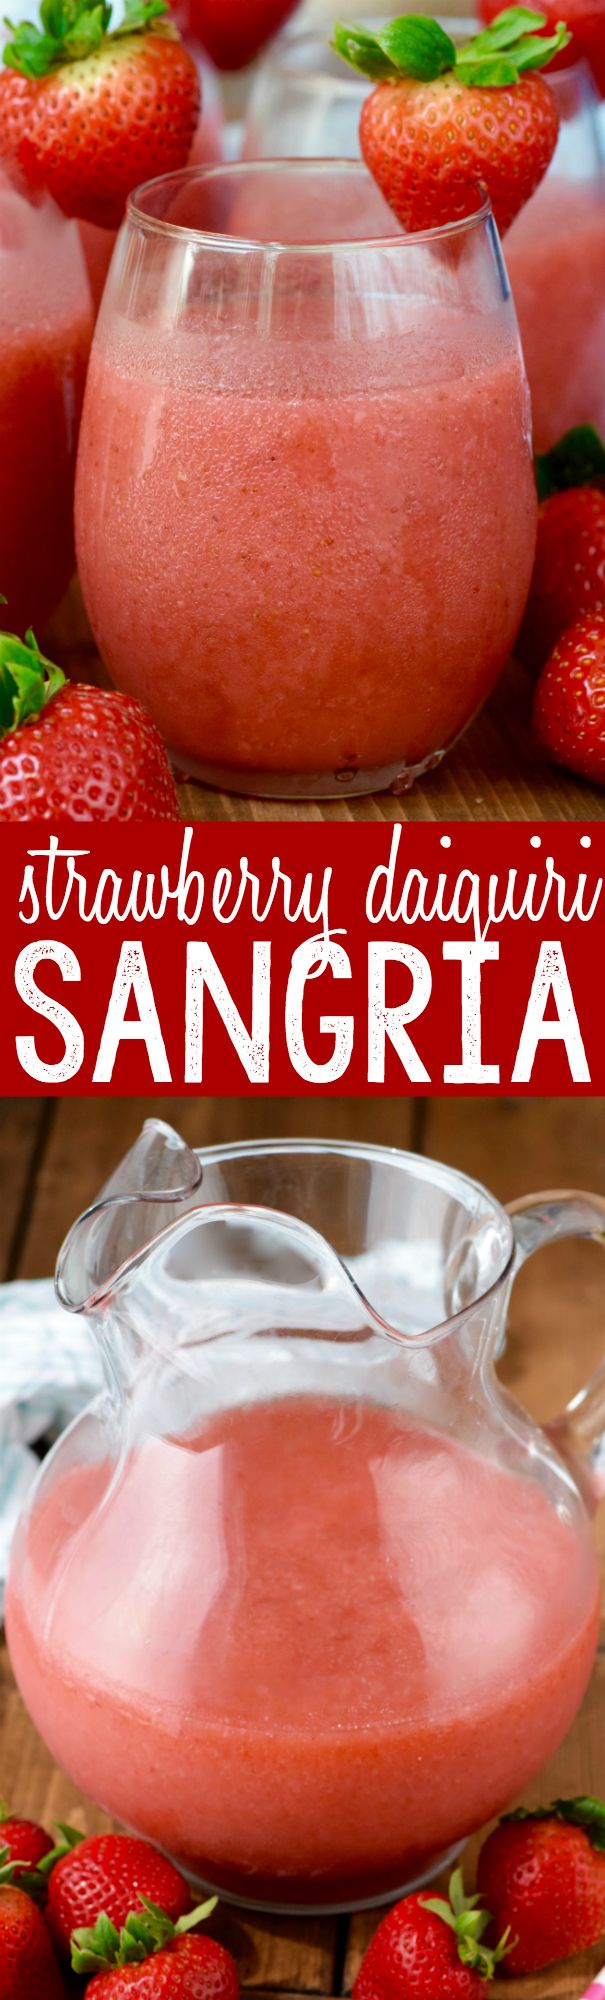 This Strawberry Daiquiri Sangria is super easy to make, no crazy ingredients, and is awesome for a party!  You just might want to triple it, because it will go FAST!